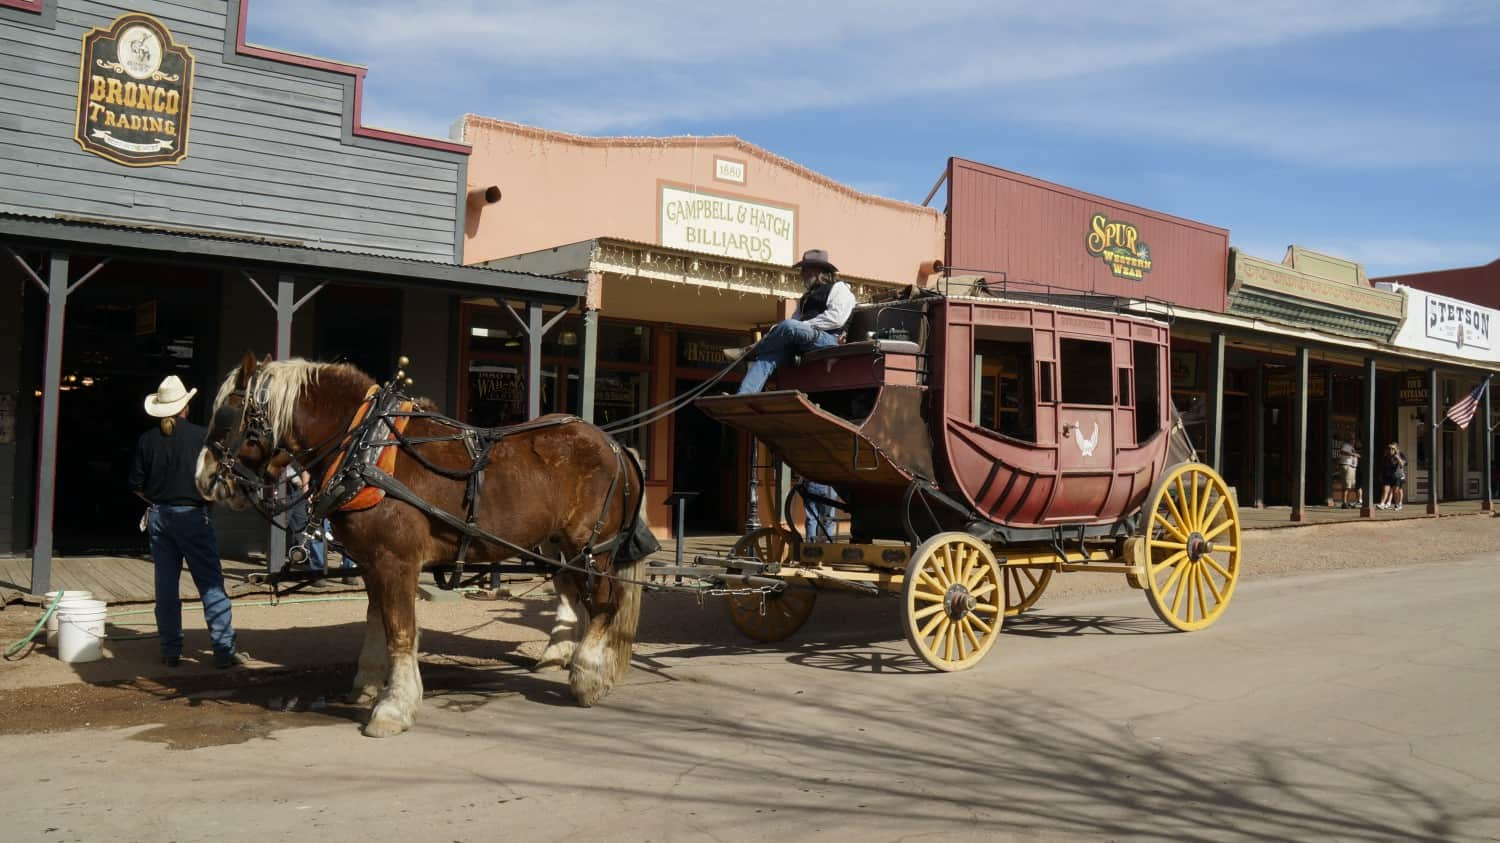 Stage Coach Tours - A Pet Friendly Attraction in Tombstone, AZ